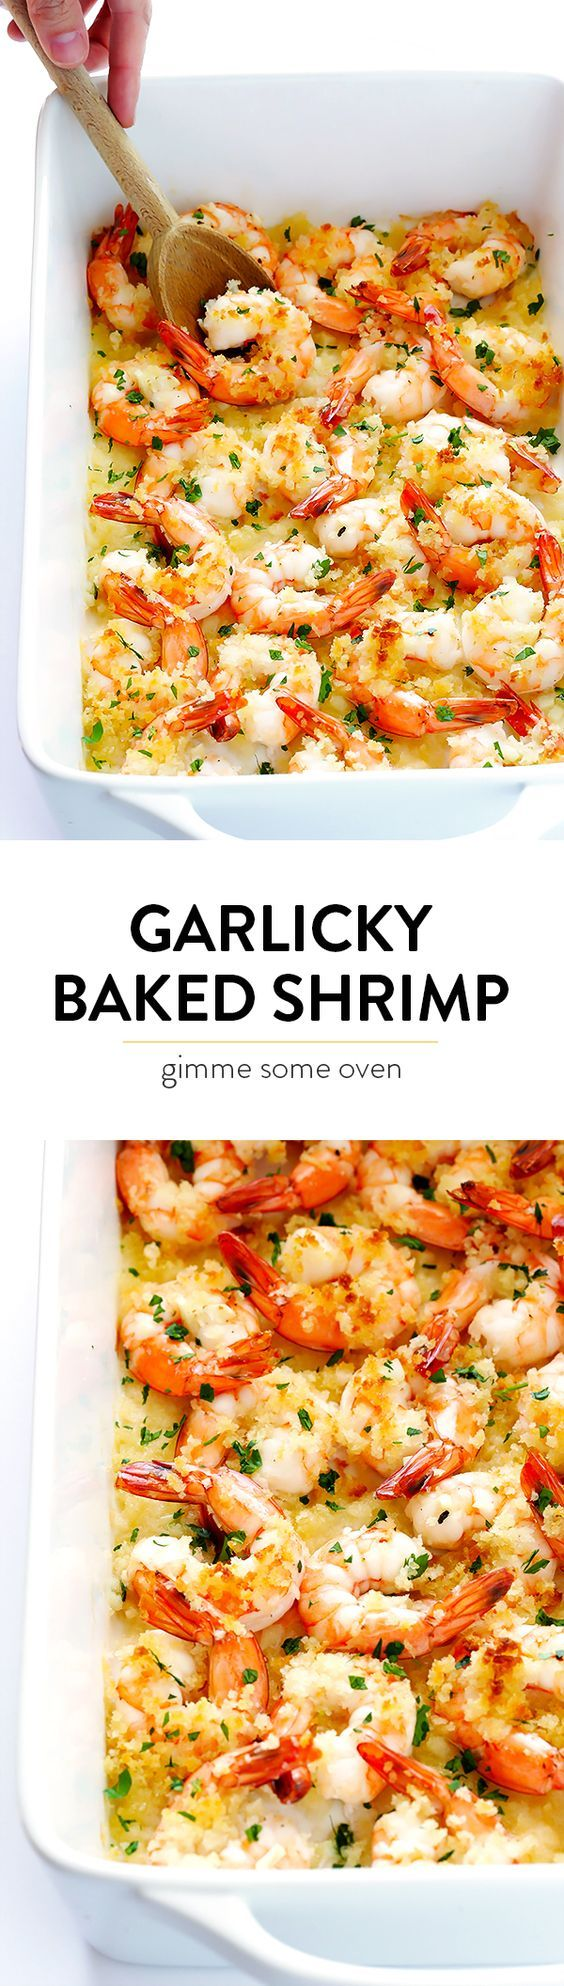 Garlicky Baked Shrimp Recipe  one of my favorite easy dinners!  It's super quick calls for just a few simple ingredients and it's always SO delicious.